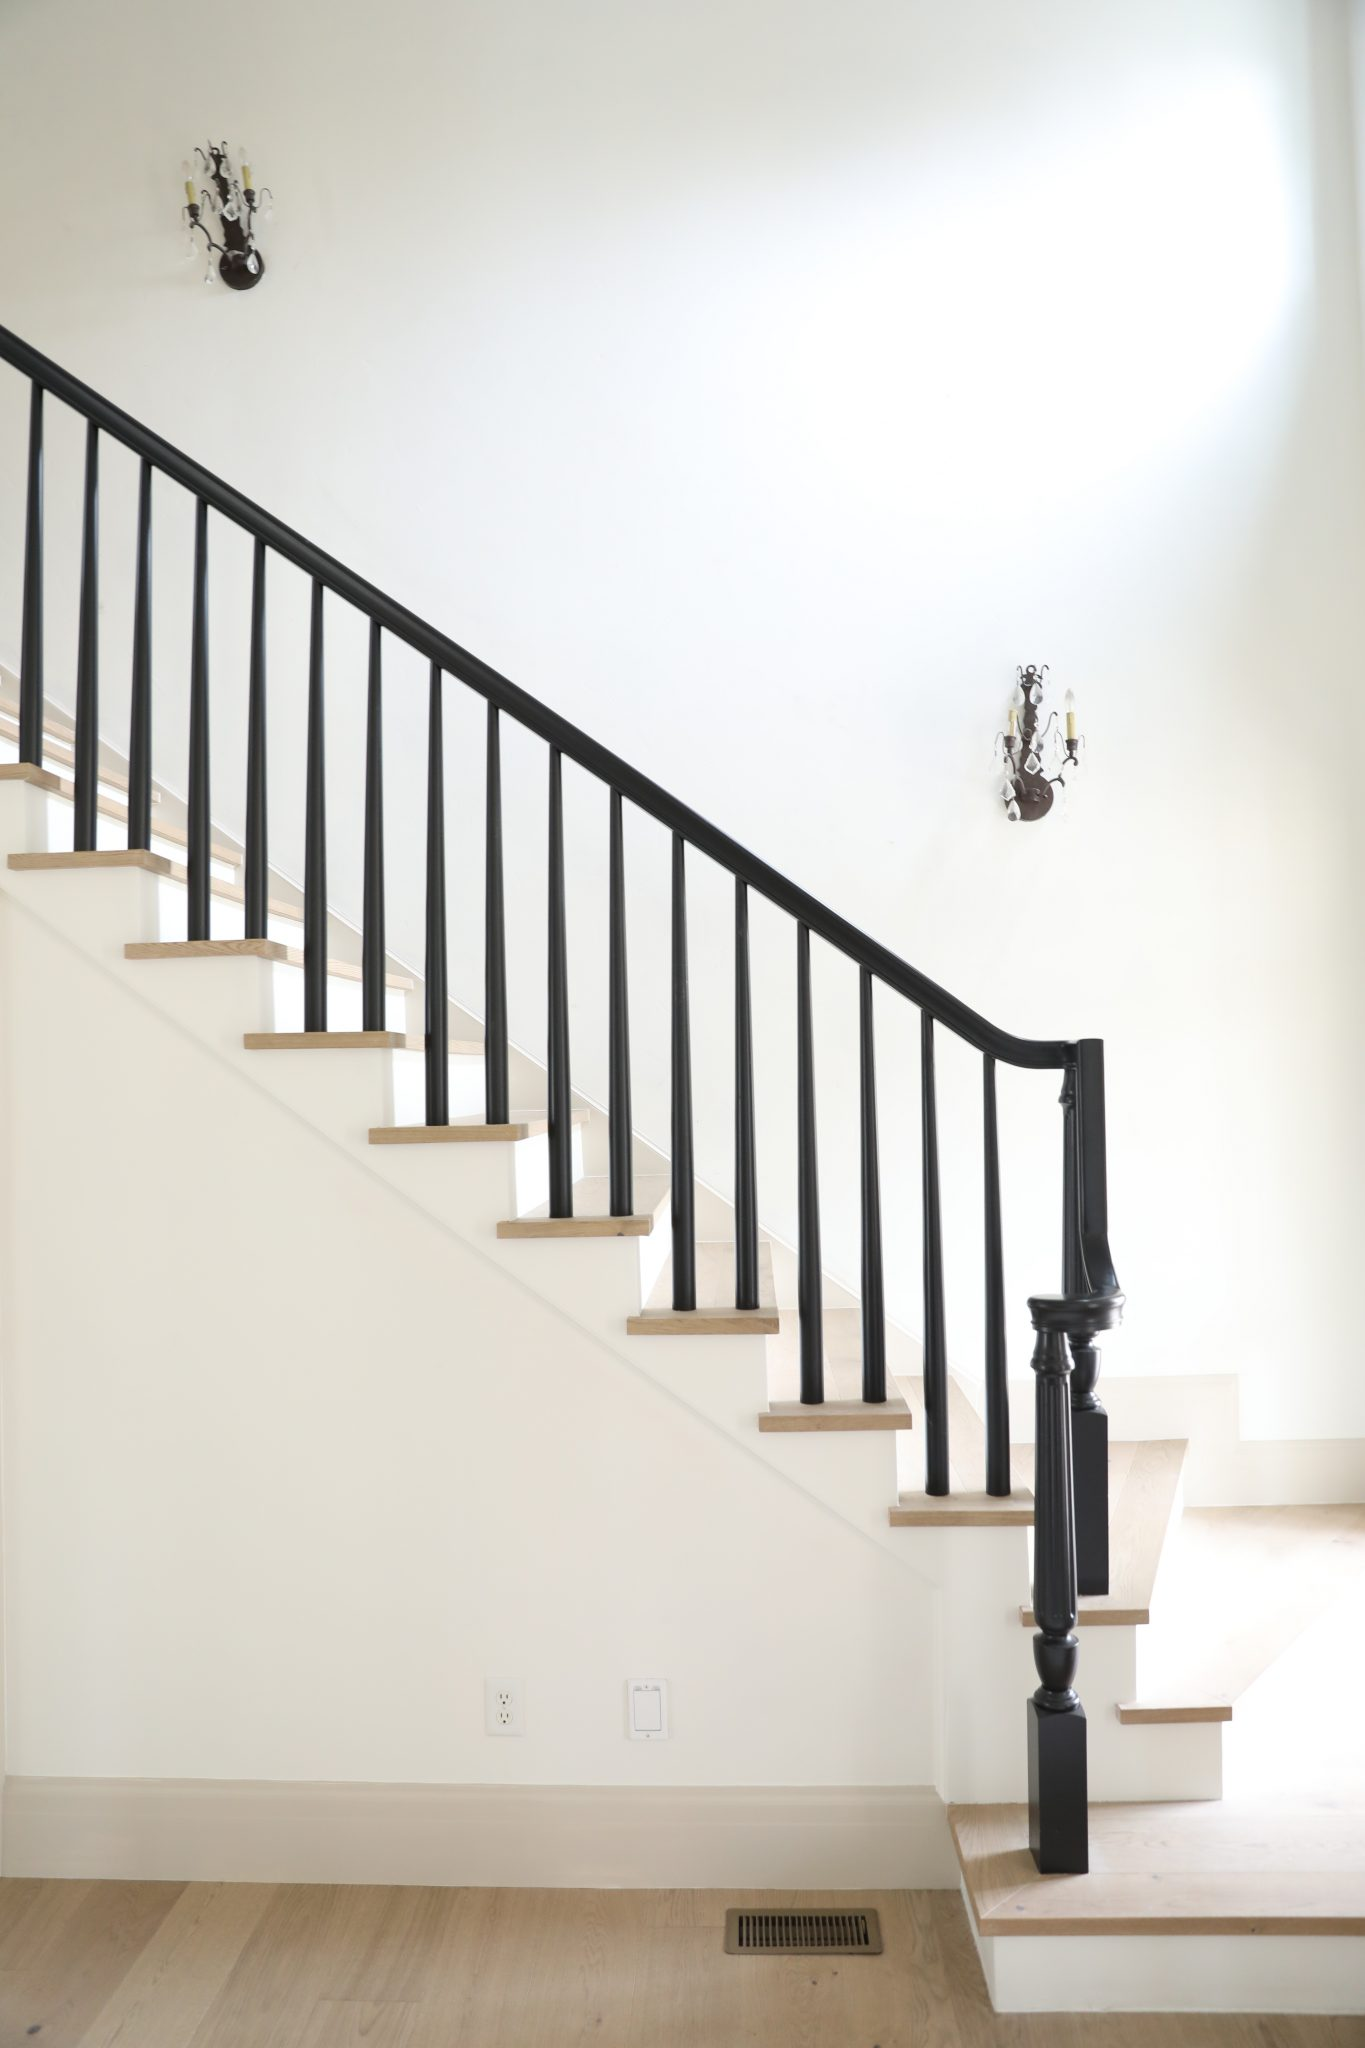 How We Decided On New Wall Sconces In The Stairwells At Last Look A Likes At Every Price Point Chris Loves Julia